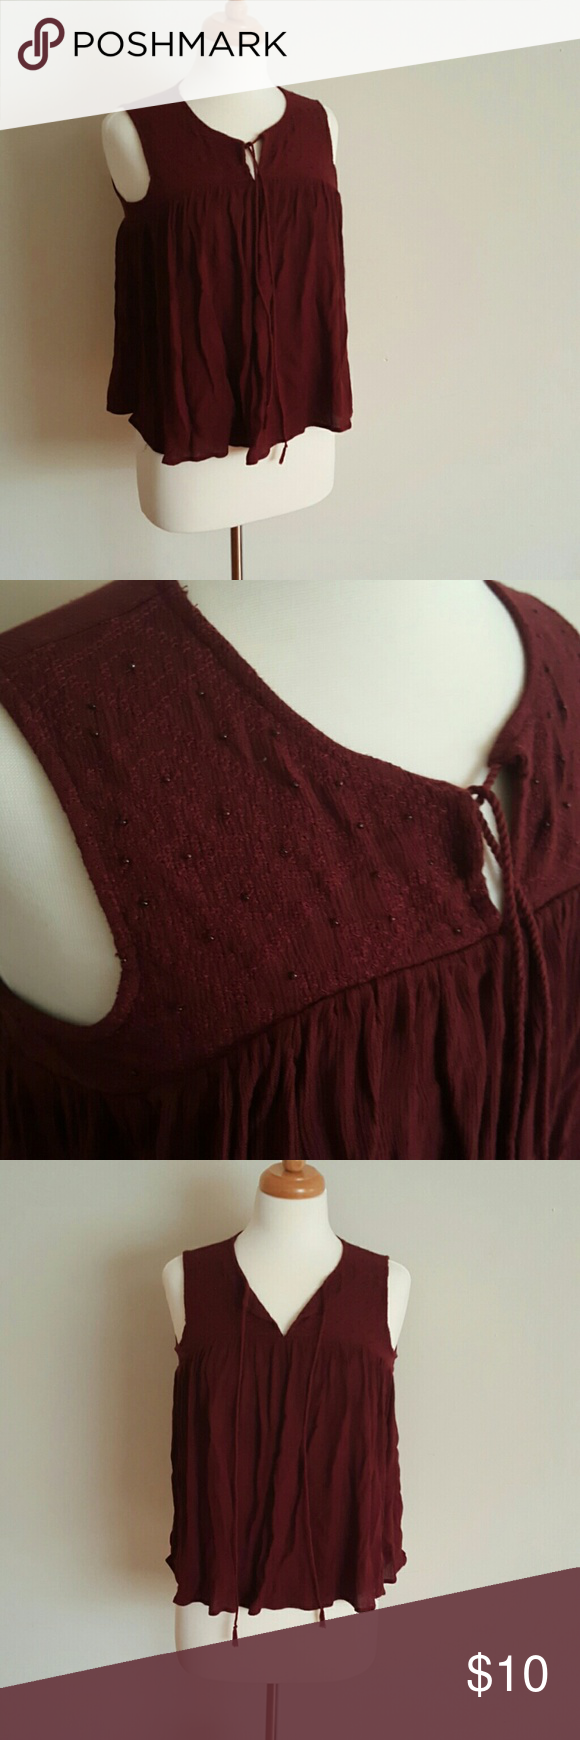 Primark Boho Chic Maroon Top Maroon. Worn twice. Beautiful addition to your closet. Beaded detailing. Primark Tops Blouses